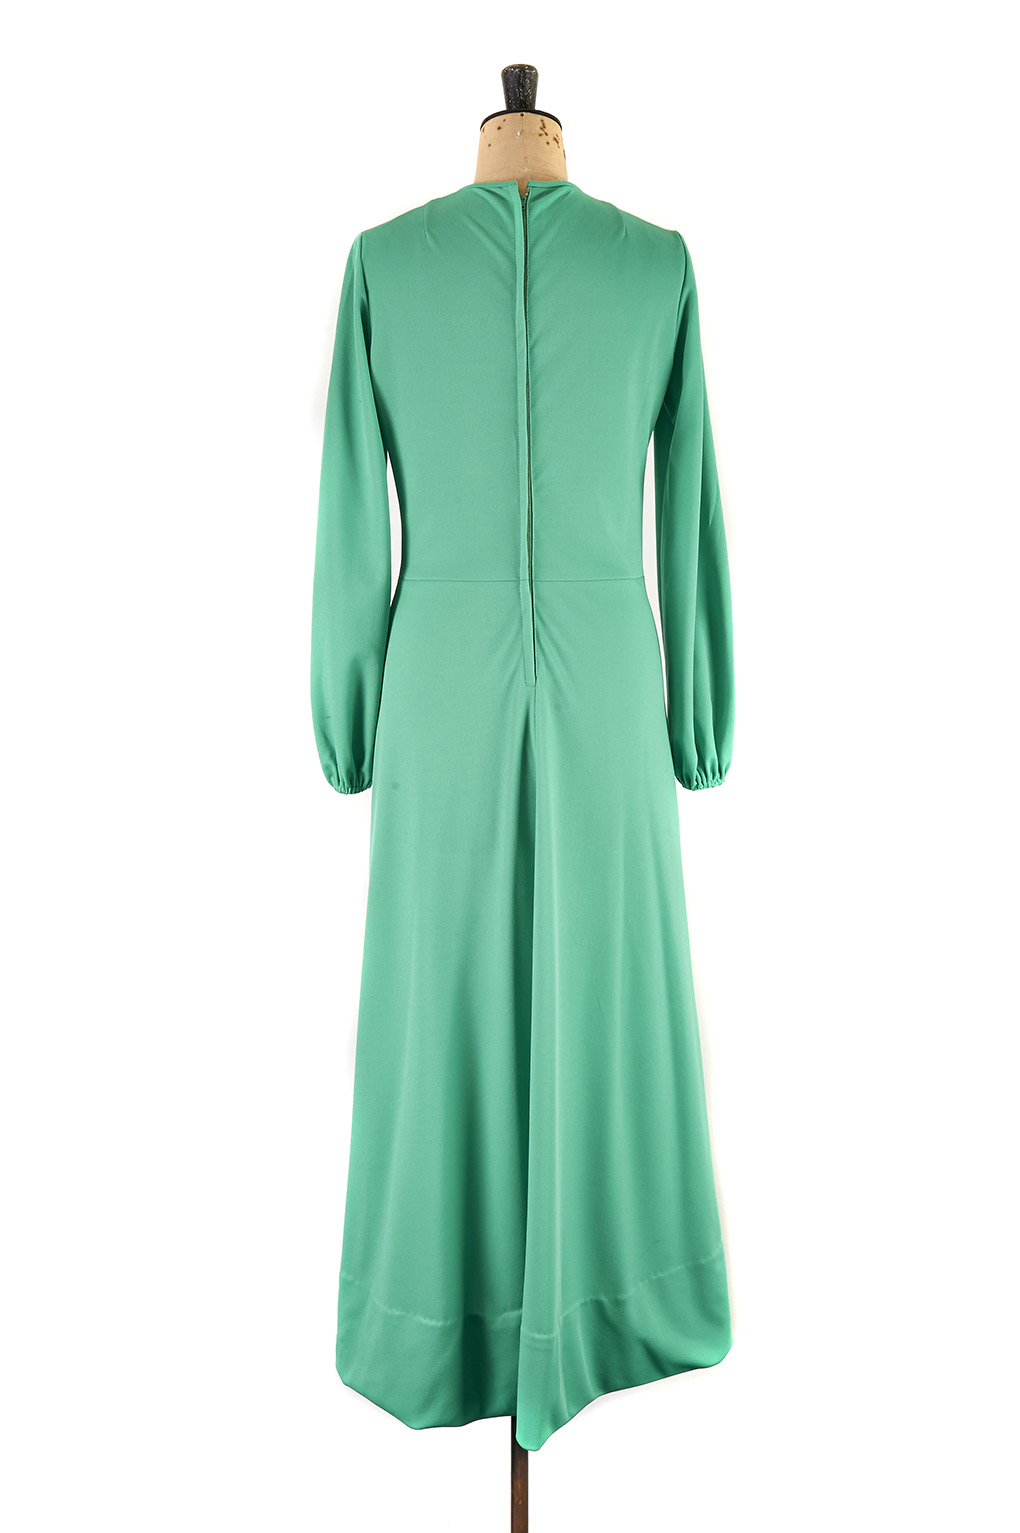 Emerald Hurrah! Green Maxi Dress